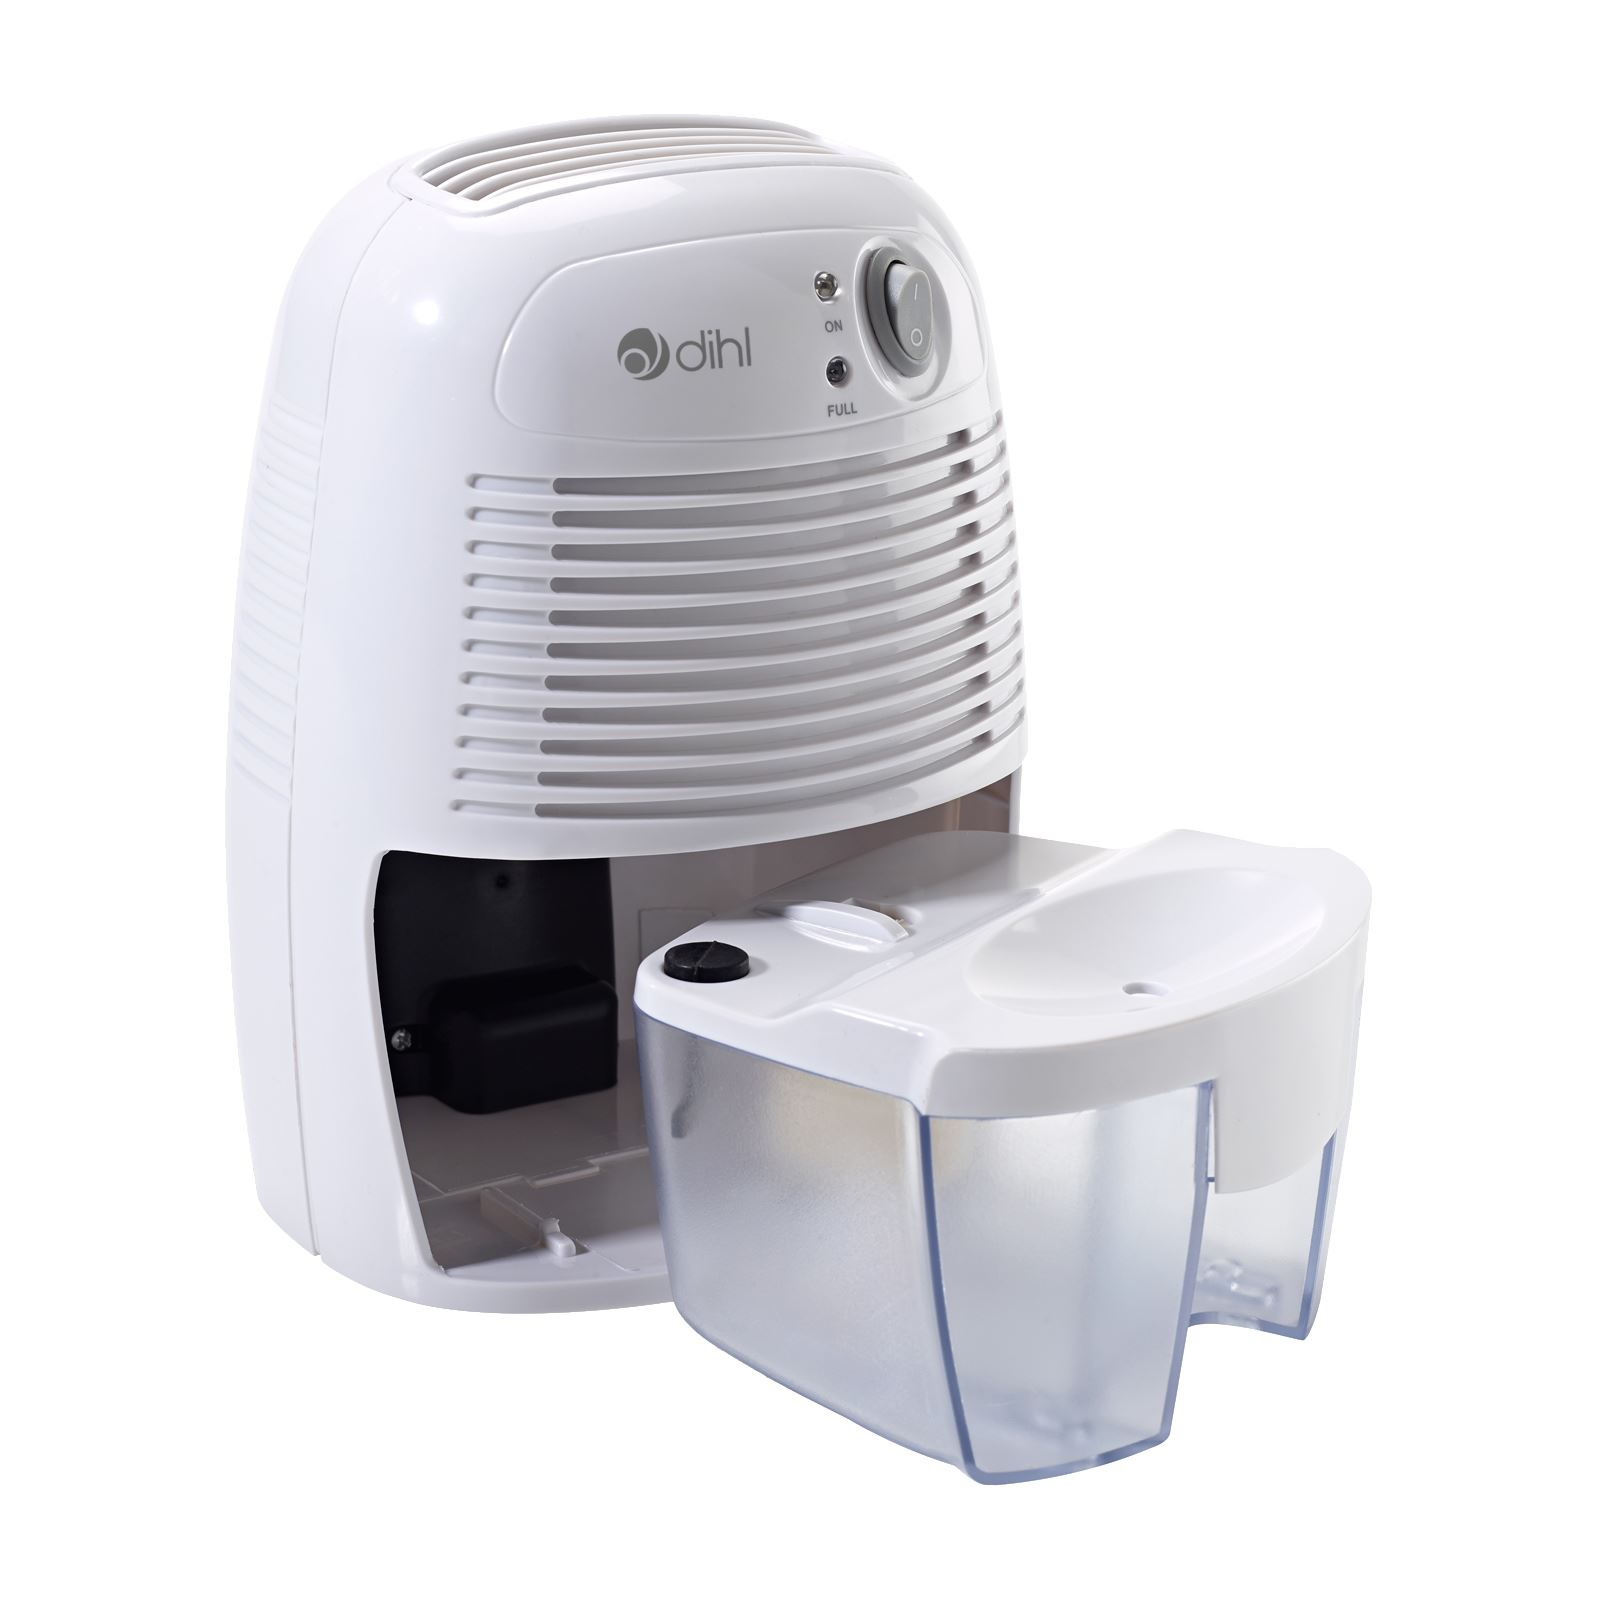 500ml Dihl Mini Small Air Dehumidifier Home Bedroom Kitchen Bathroom Car Ebay